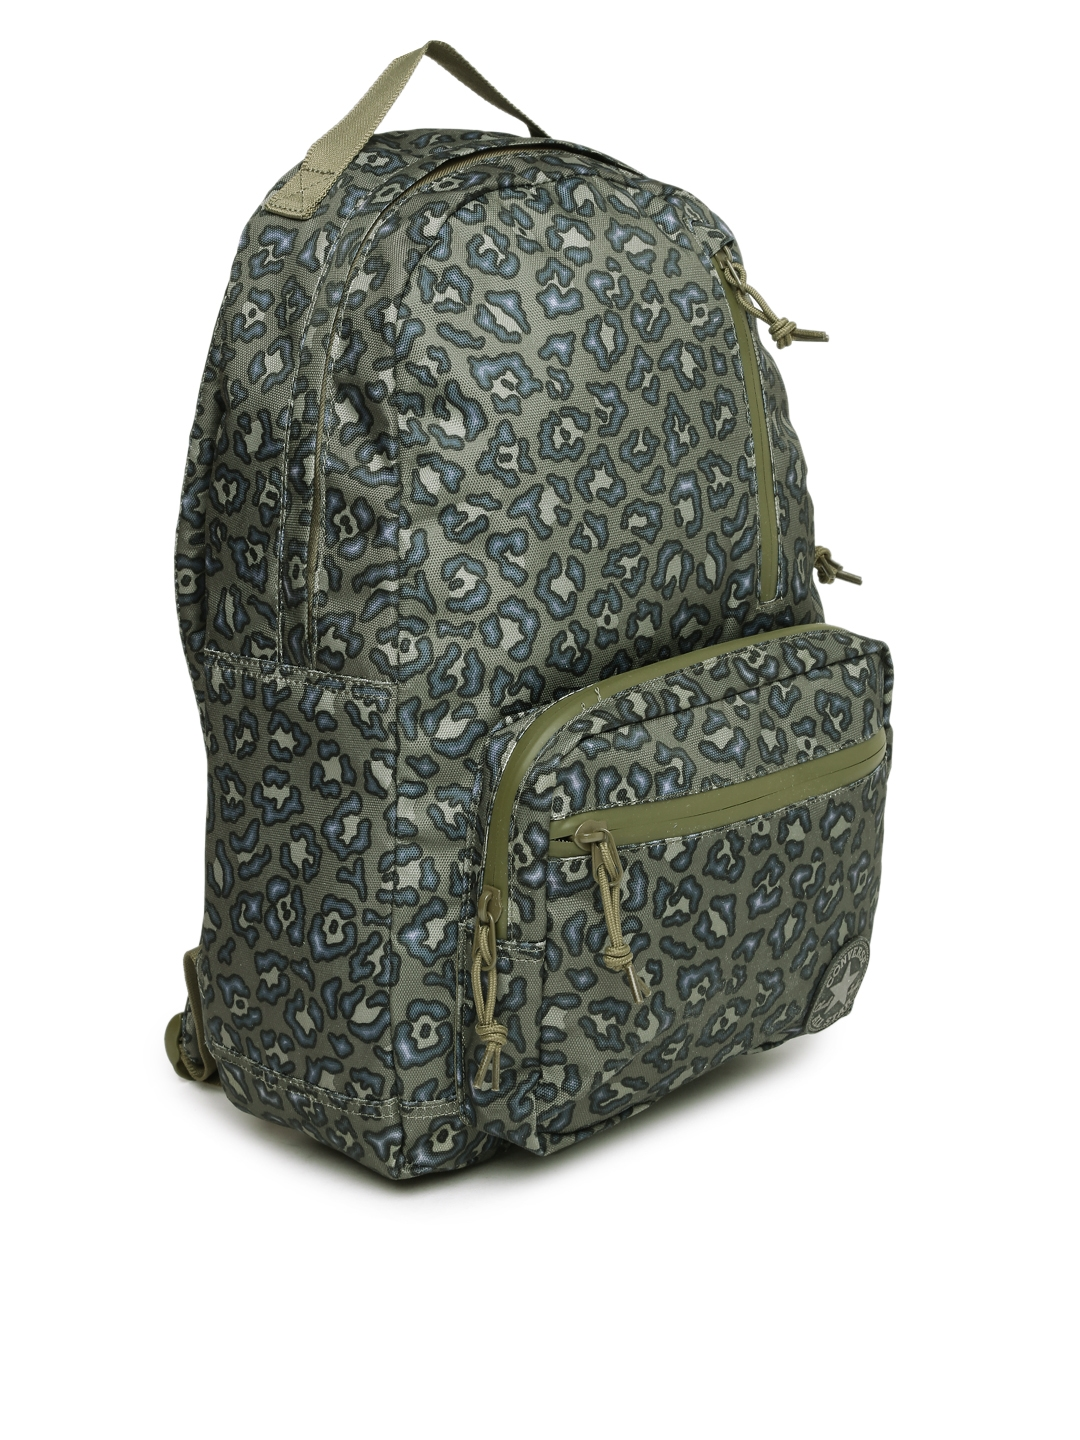 ae43f0715f Buy Converse Unisex Olive Green   Navy Graphic Print Backpack ...